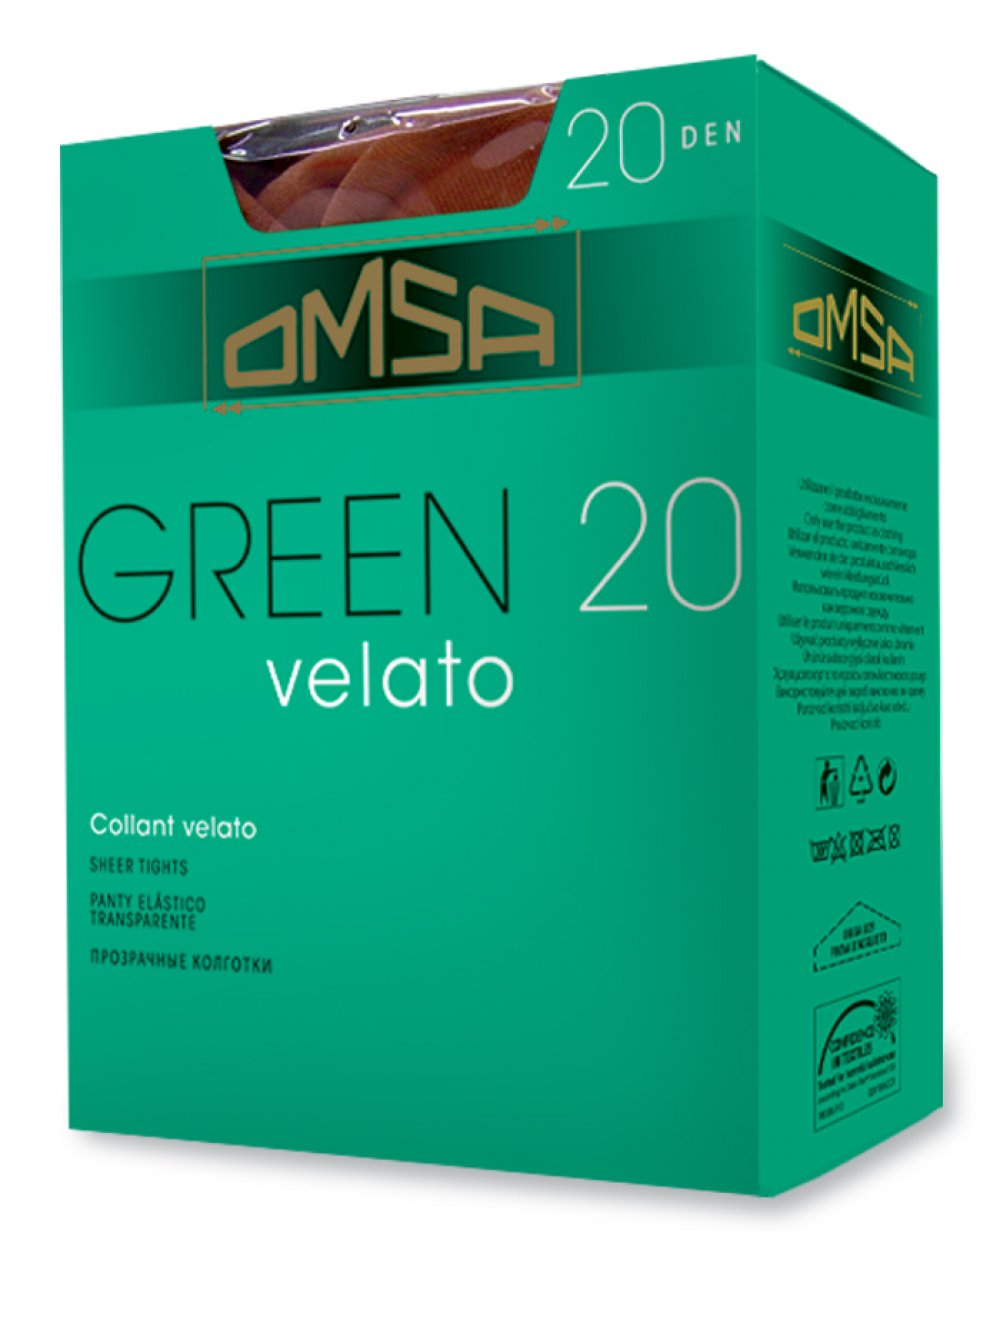 GREEN COLLANT 20 DEN VELATO OMSA